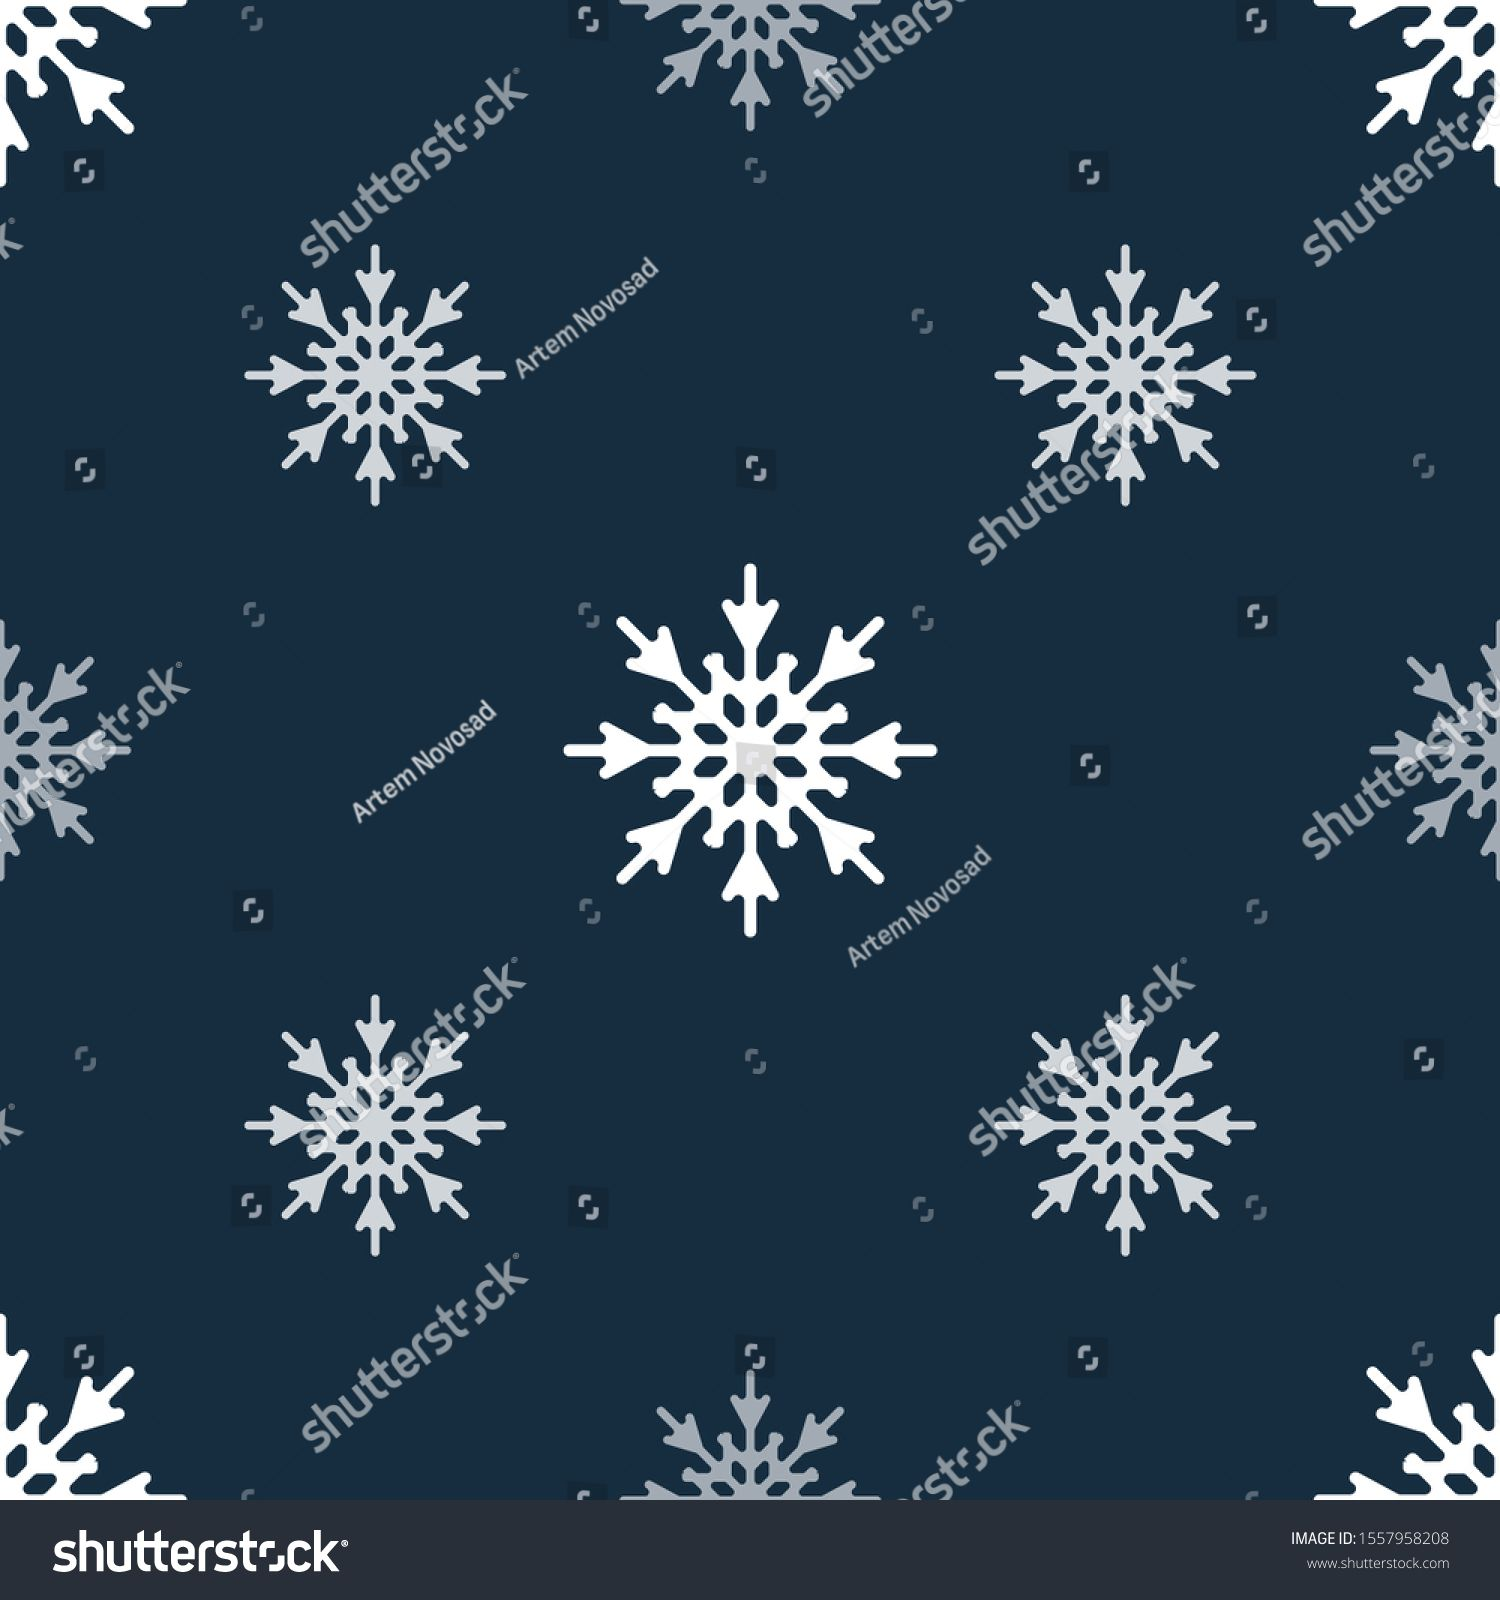 Seamless pattern with white snowflakes on a dark blue background. Snowflakes of different size and density. Vector illustration #Ad , #AFF, #snowflakes#dark#blue#Seamless